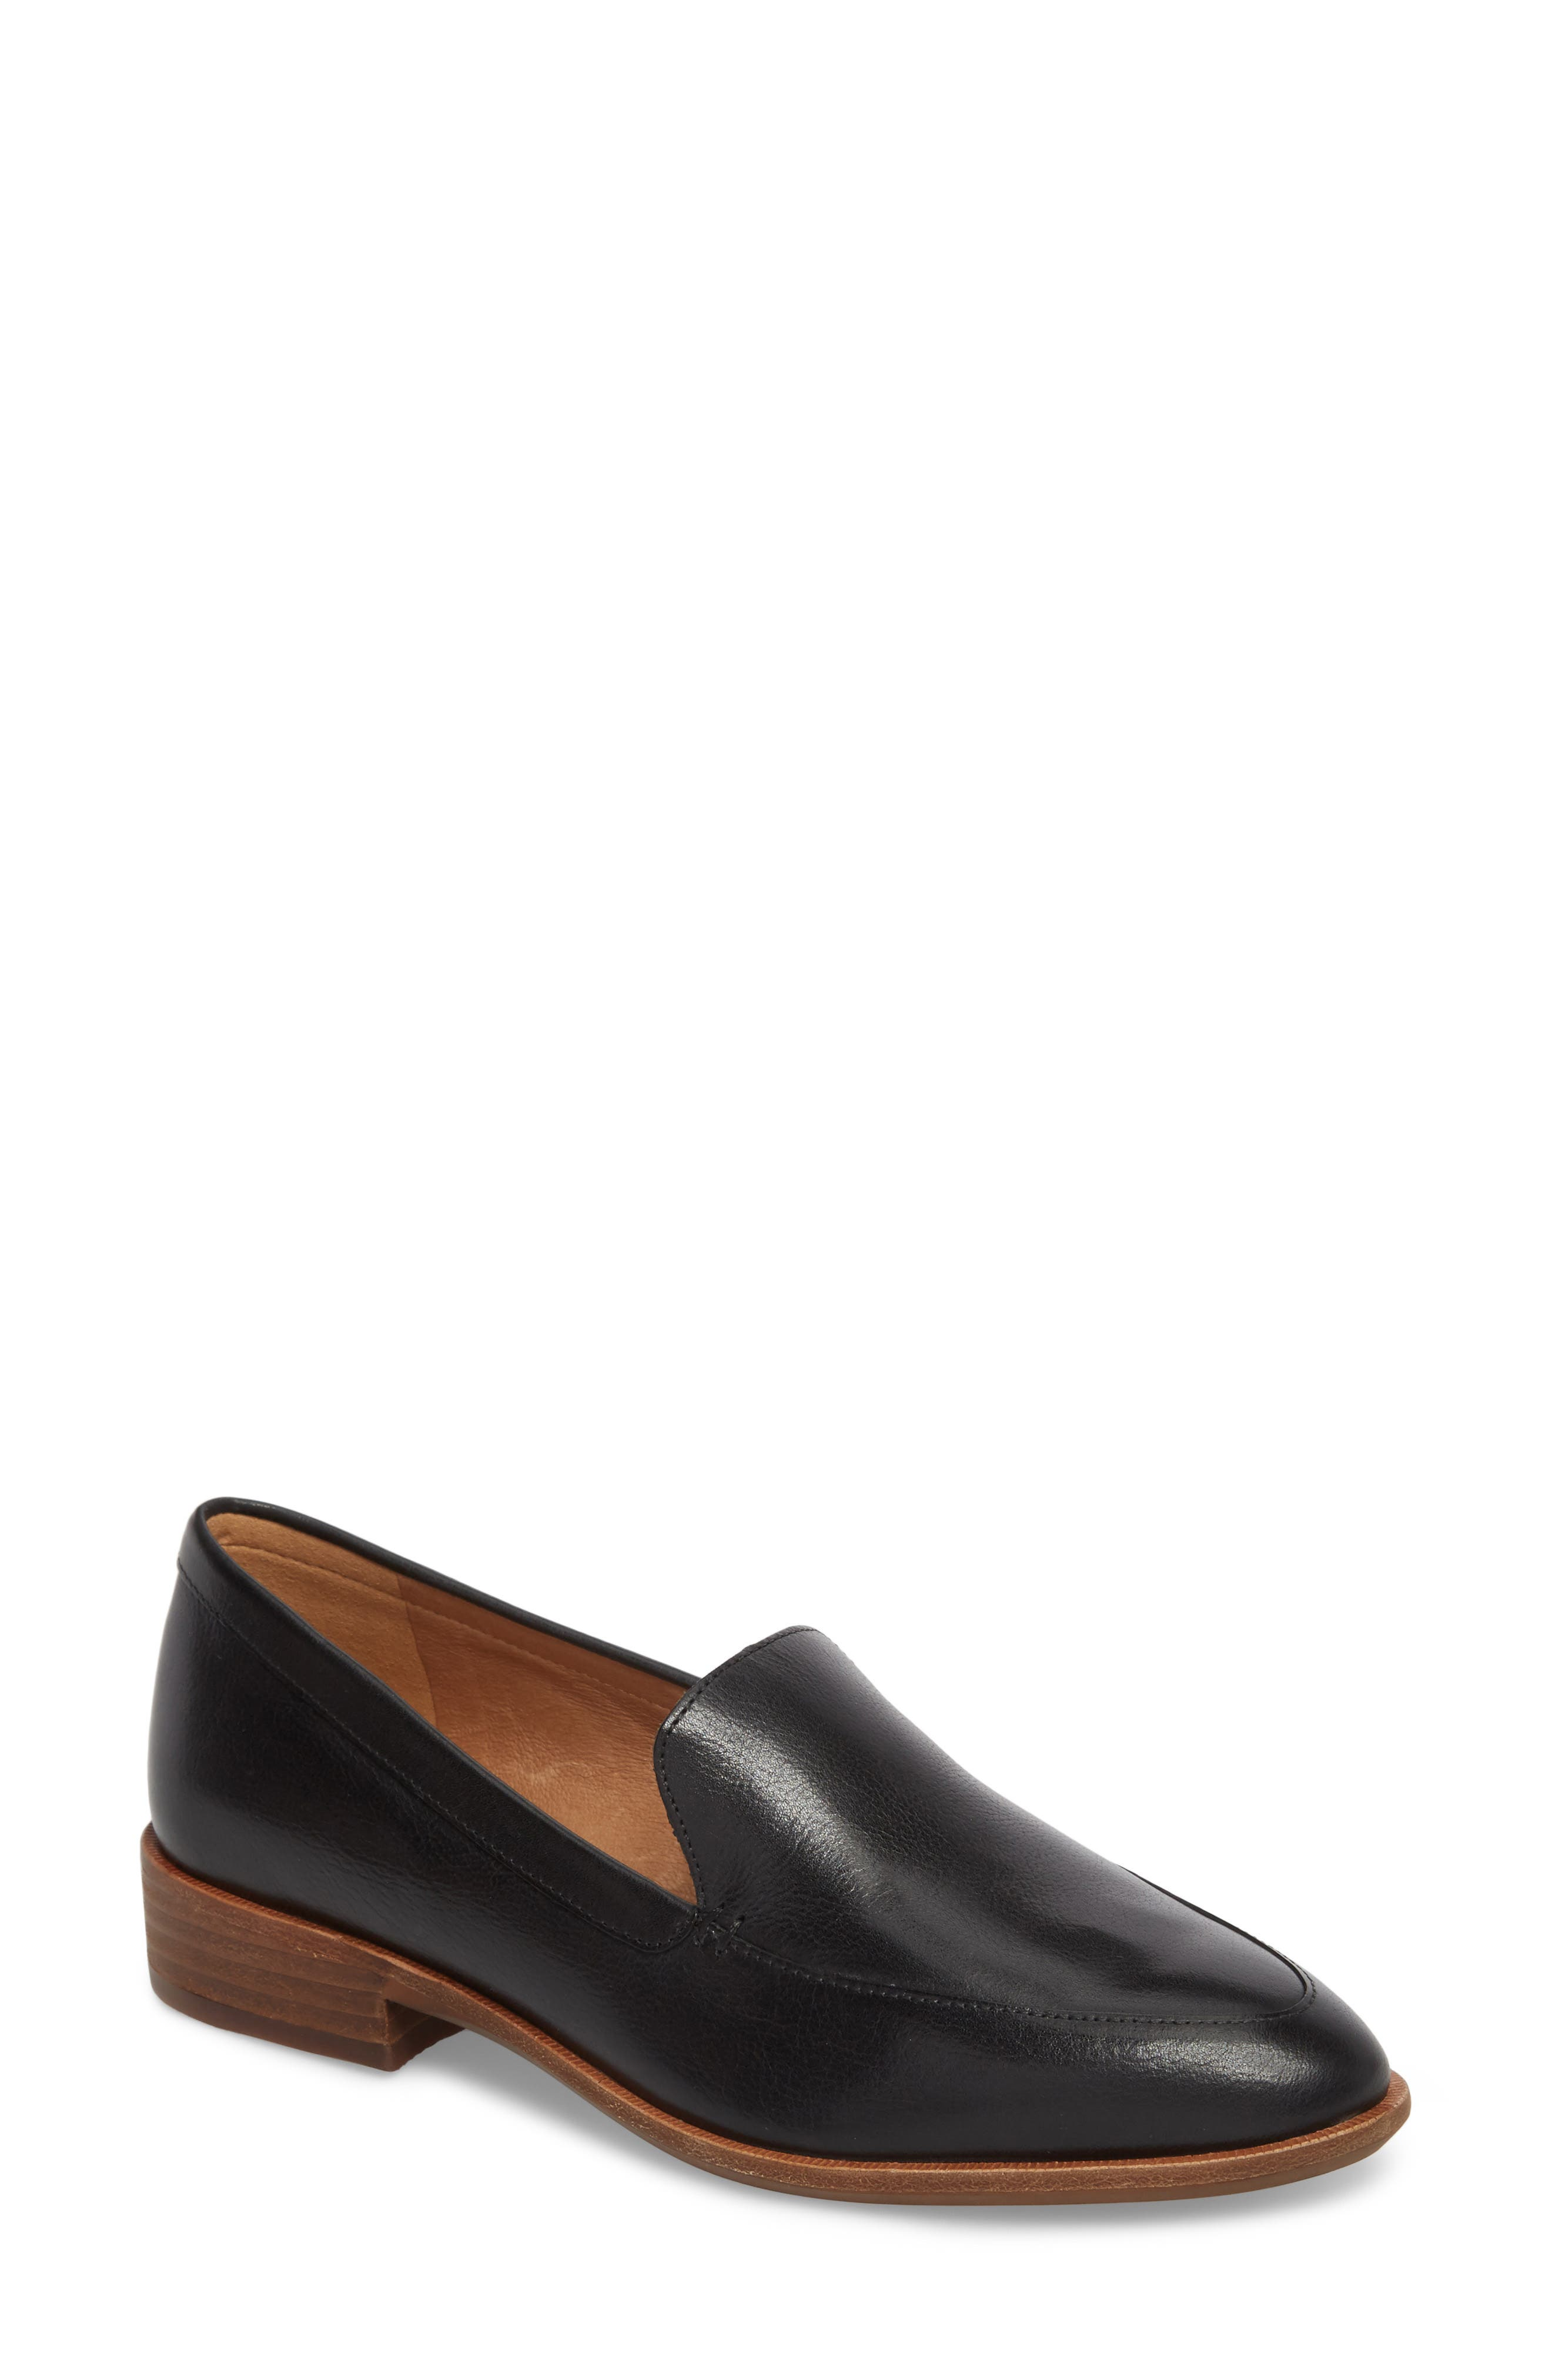 f4ca4211825 Women s Madewell Loafers   Oxfords